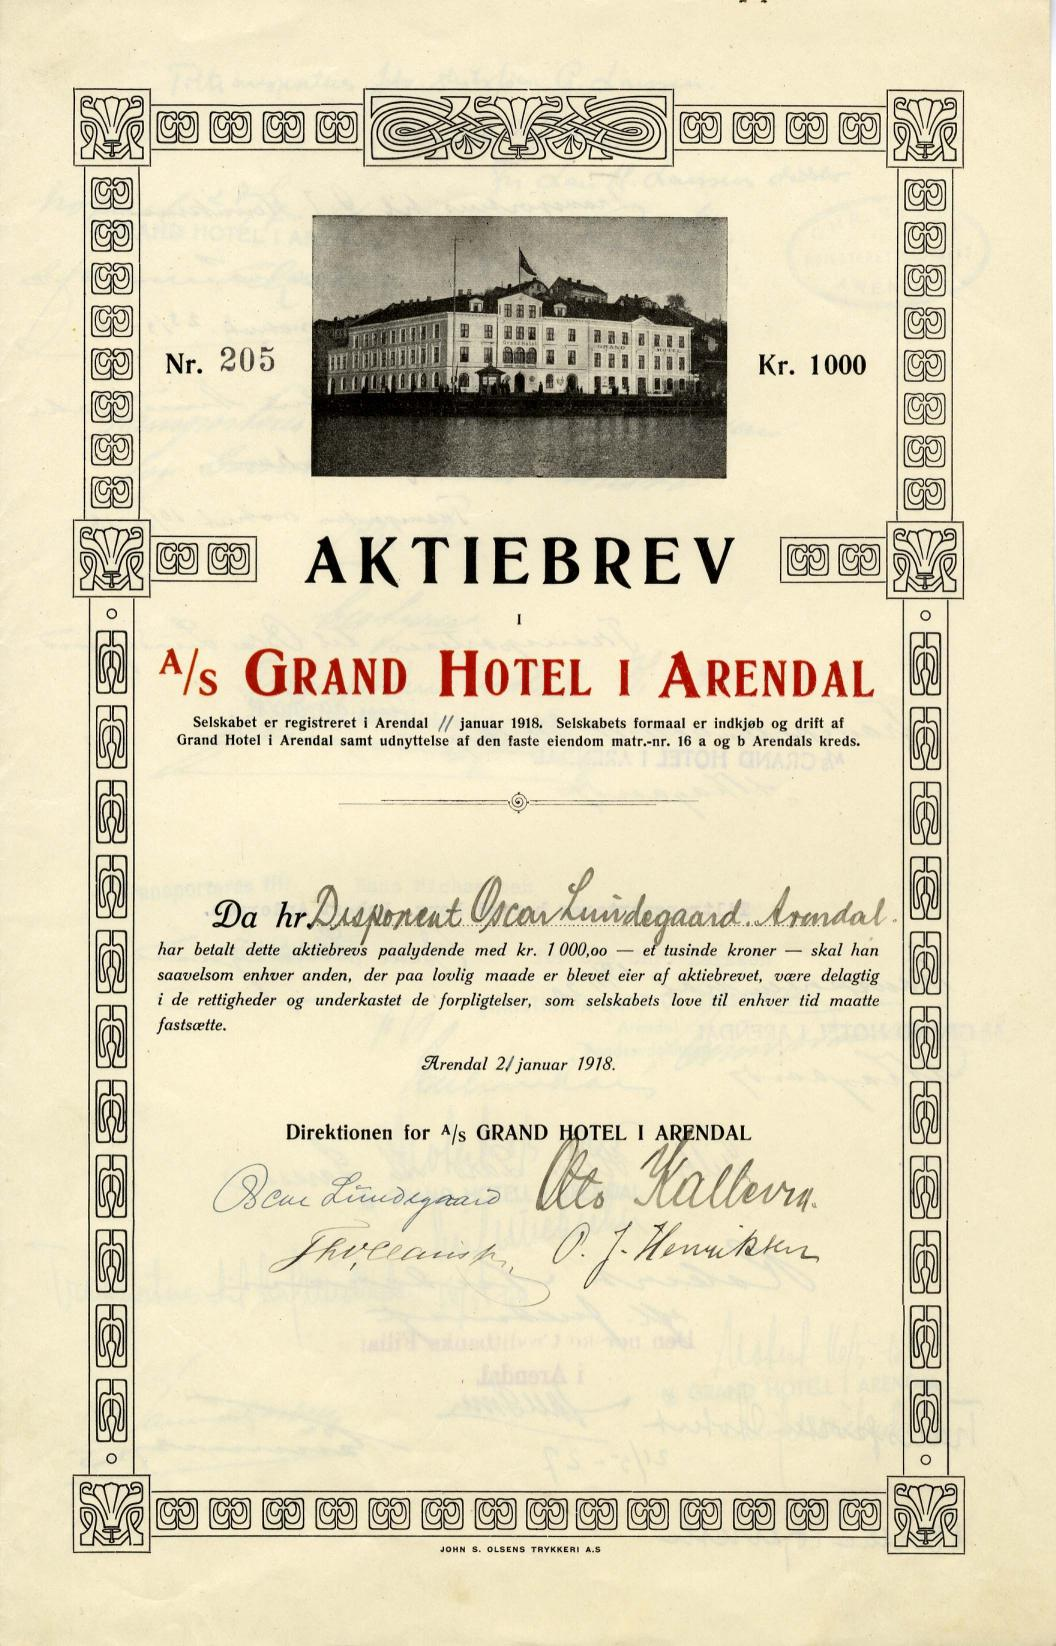 grand-hotel-i-arendal_1918_1000